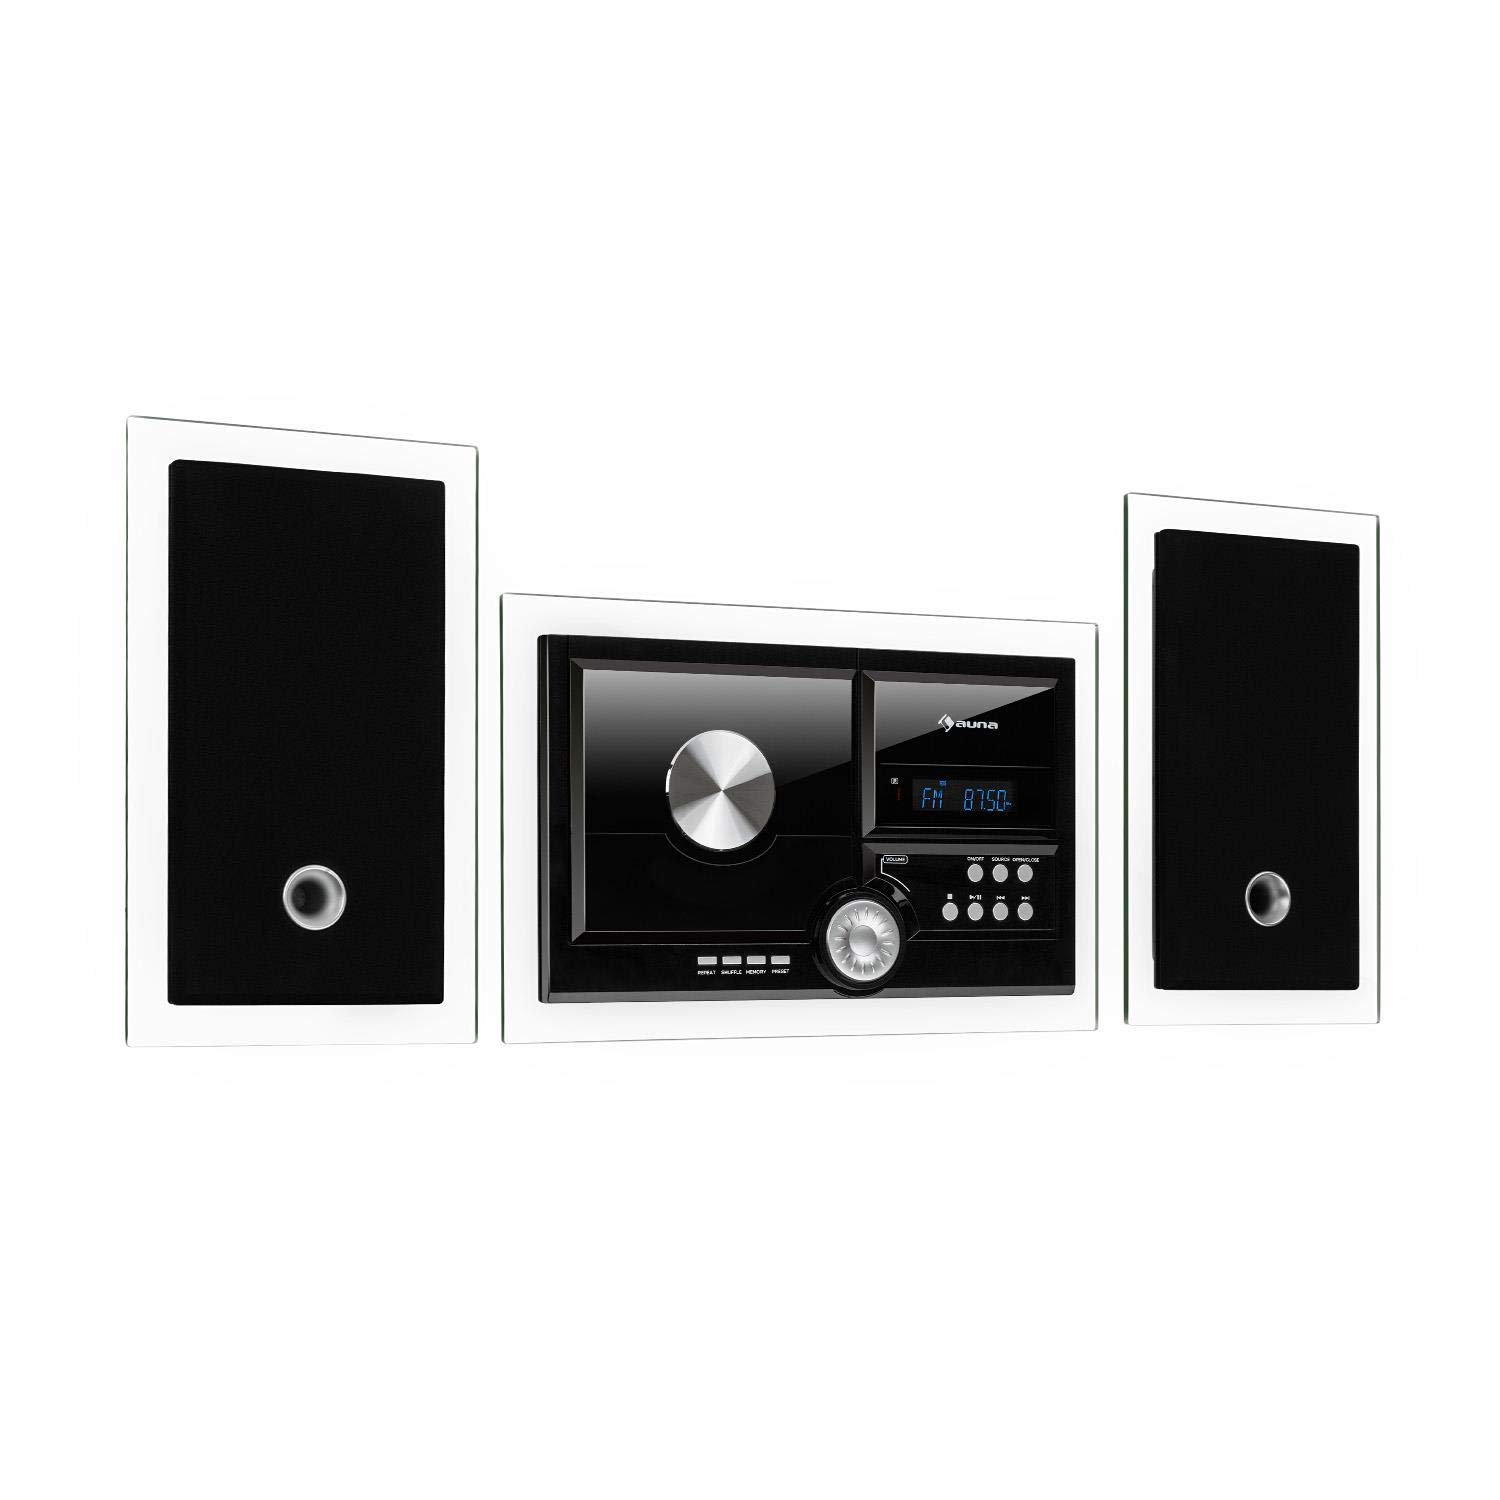 auna Stereosonic Microsystem • Stereo System • Micro System • 2 x 10 Watts RMS Stereo Speakers • Front-Loading CD Player • FM Tuner • Bluetooth • USB Port • Incl. Remote Control • Black by AUNA